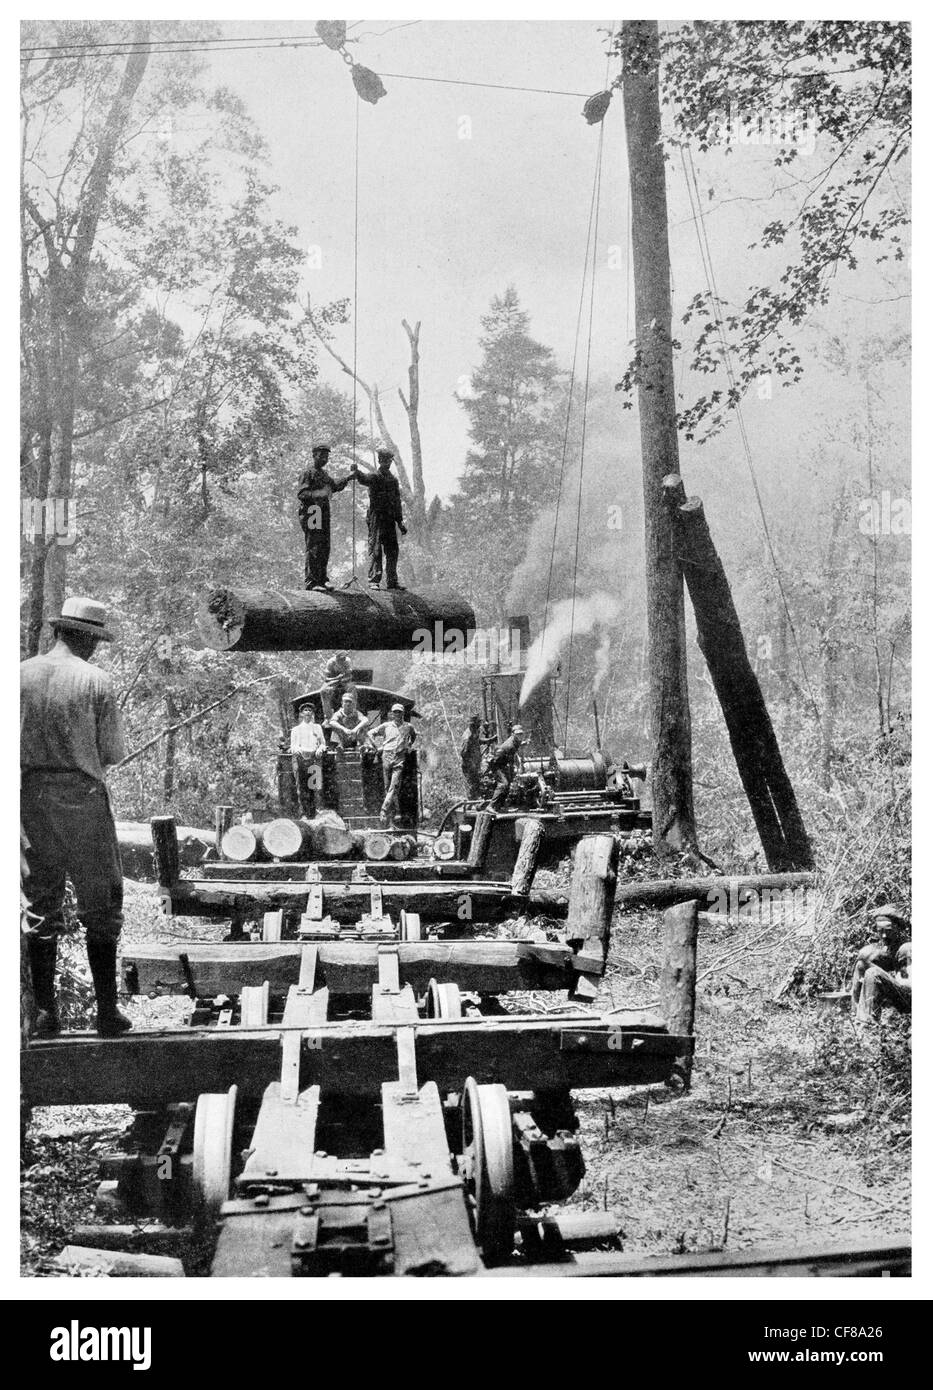 1926 Tandem Ride Logging camp gum tree log lumber timber Wilmington - Stock Image